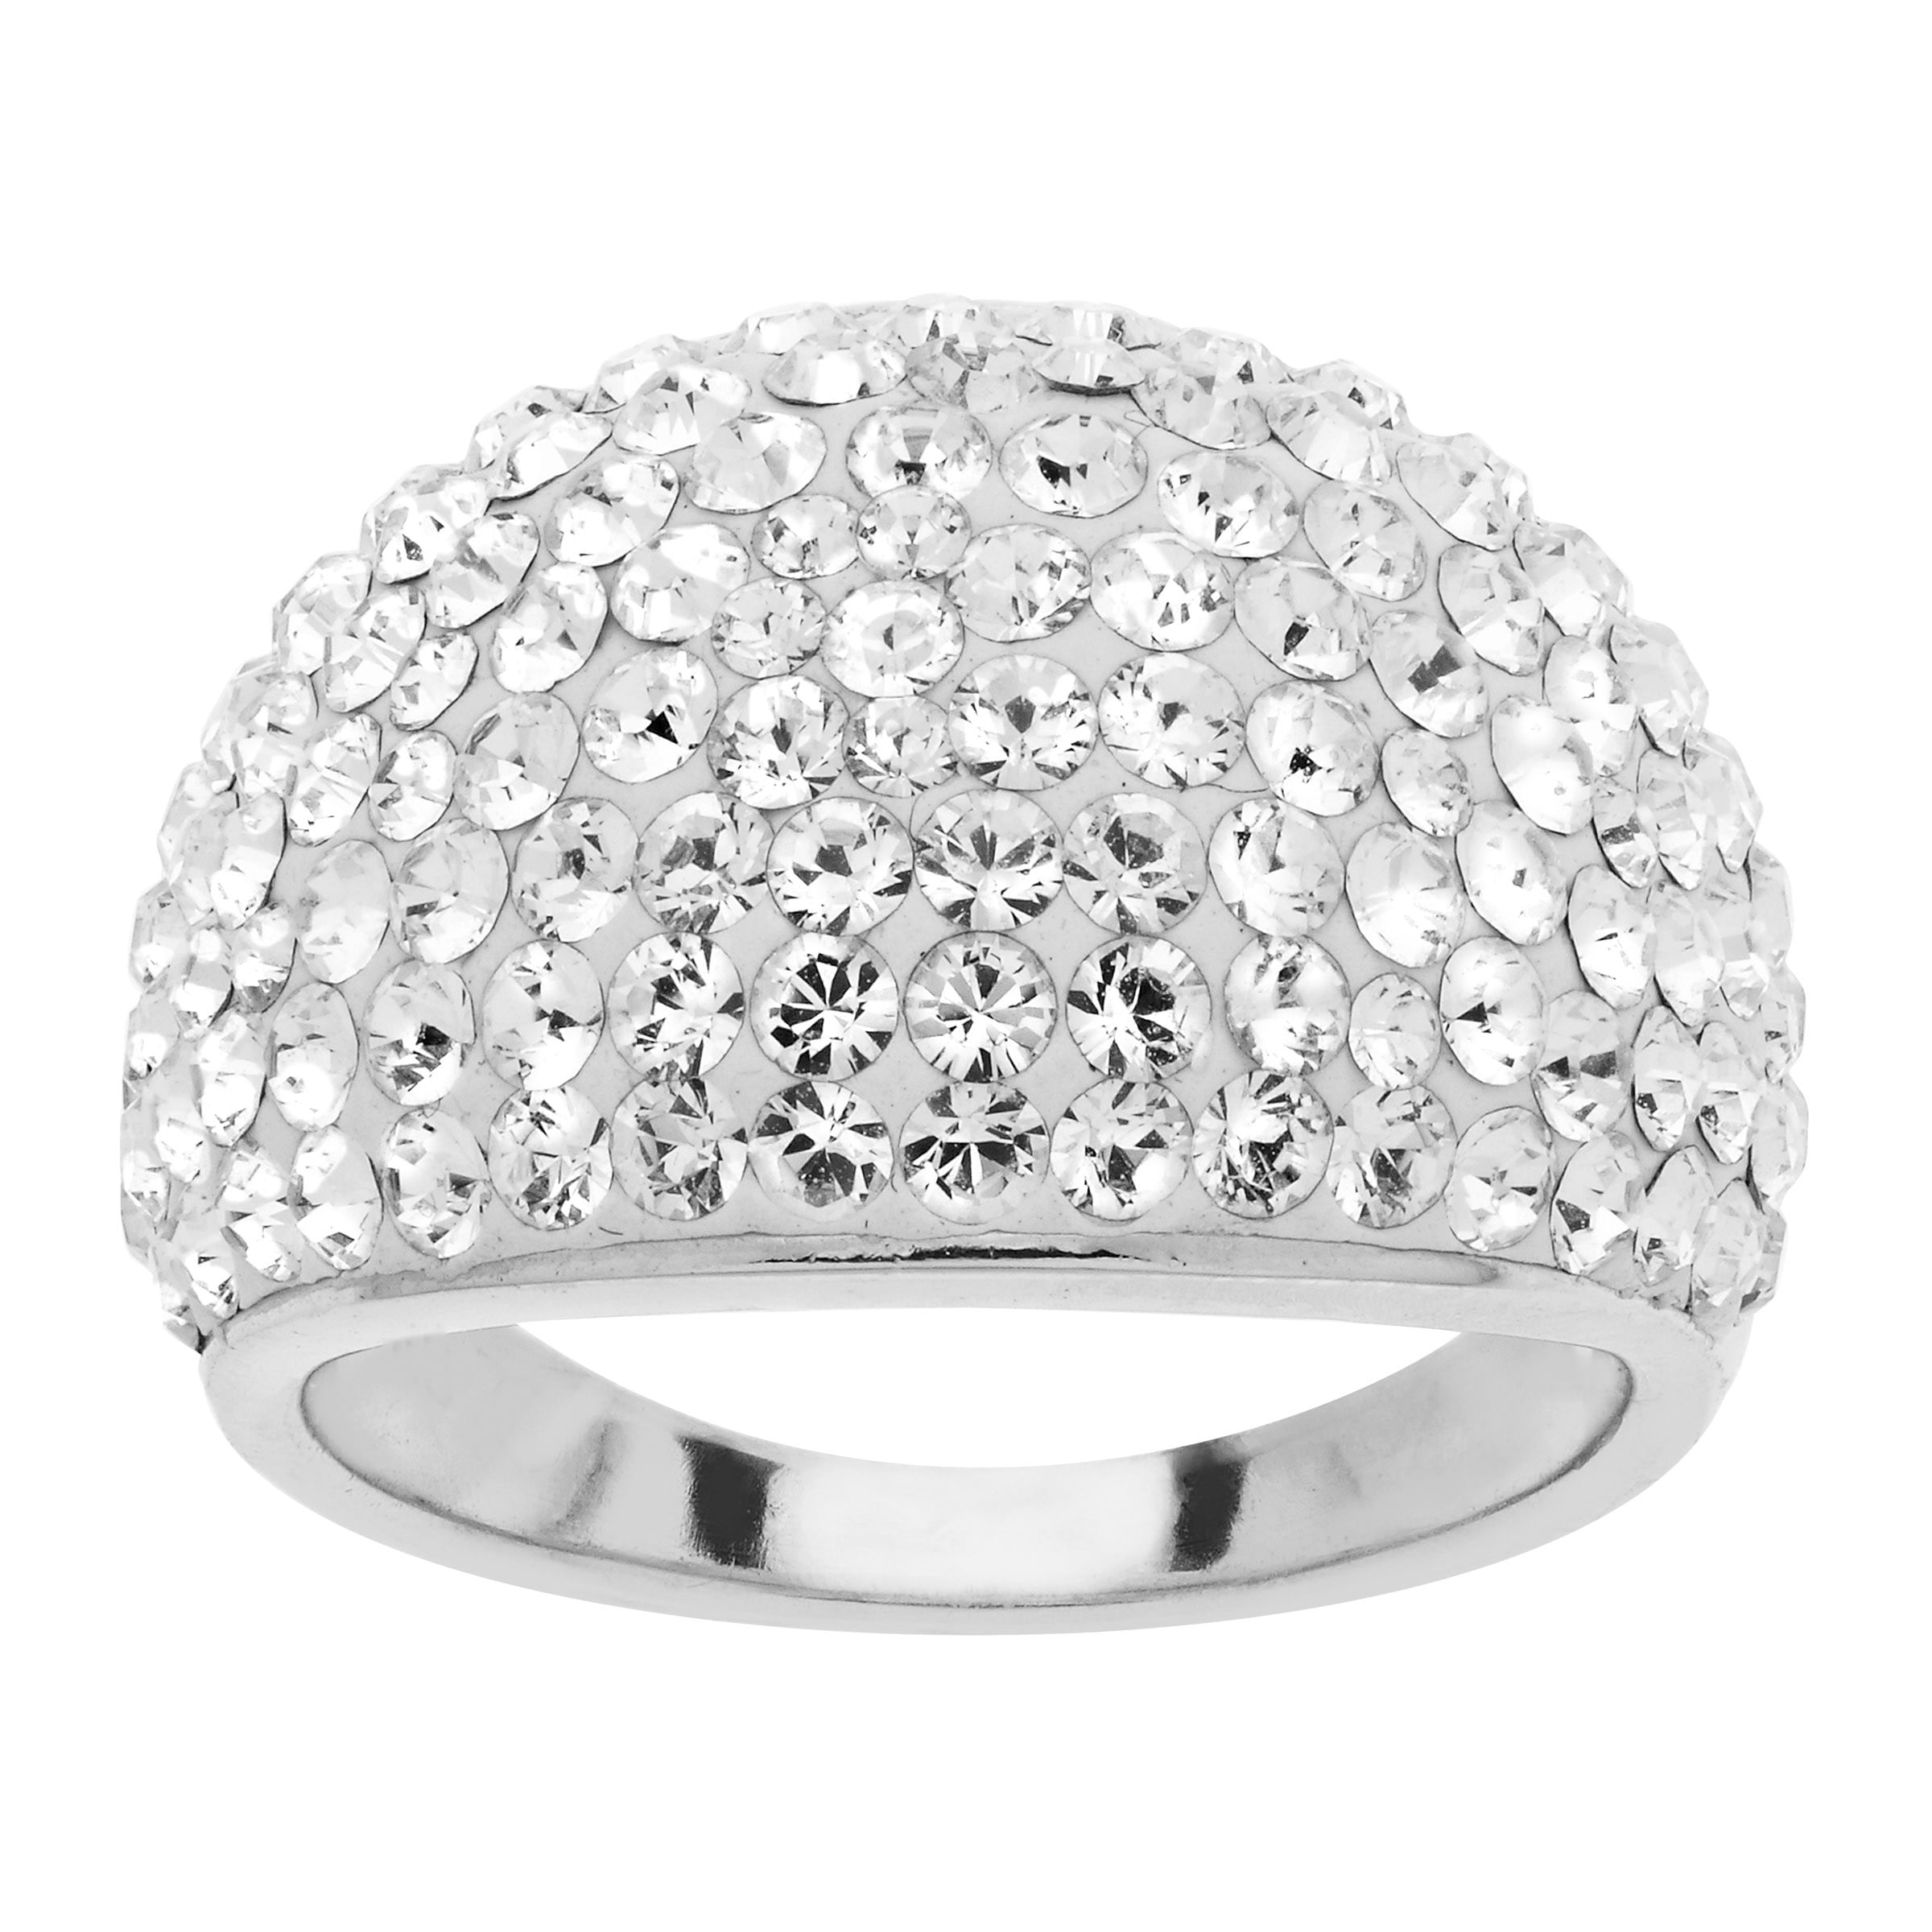 Crystaluxe April Ring with White Swarovski Crystals in Sterling Silver